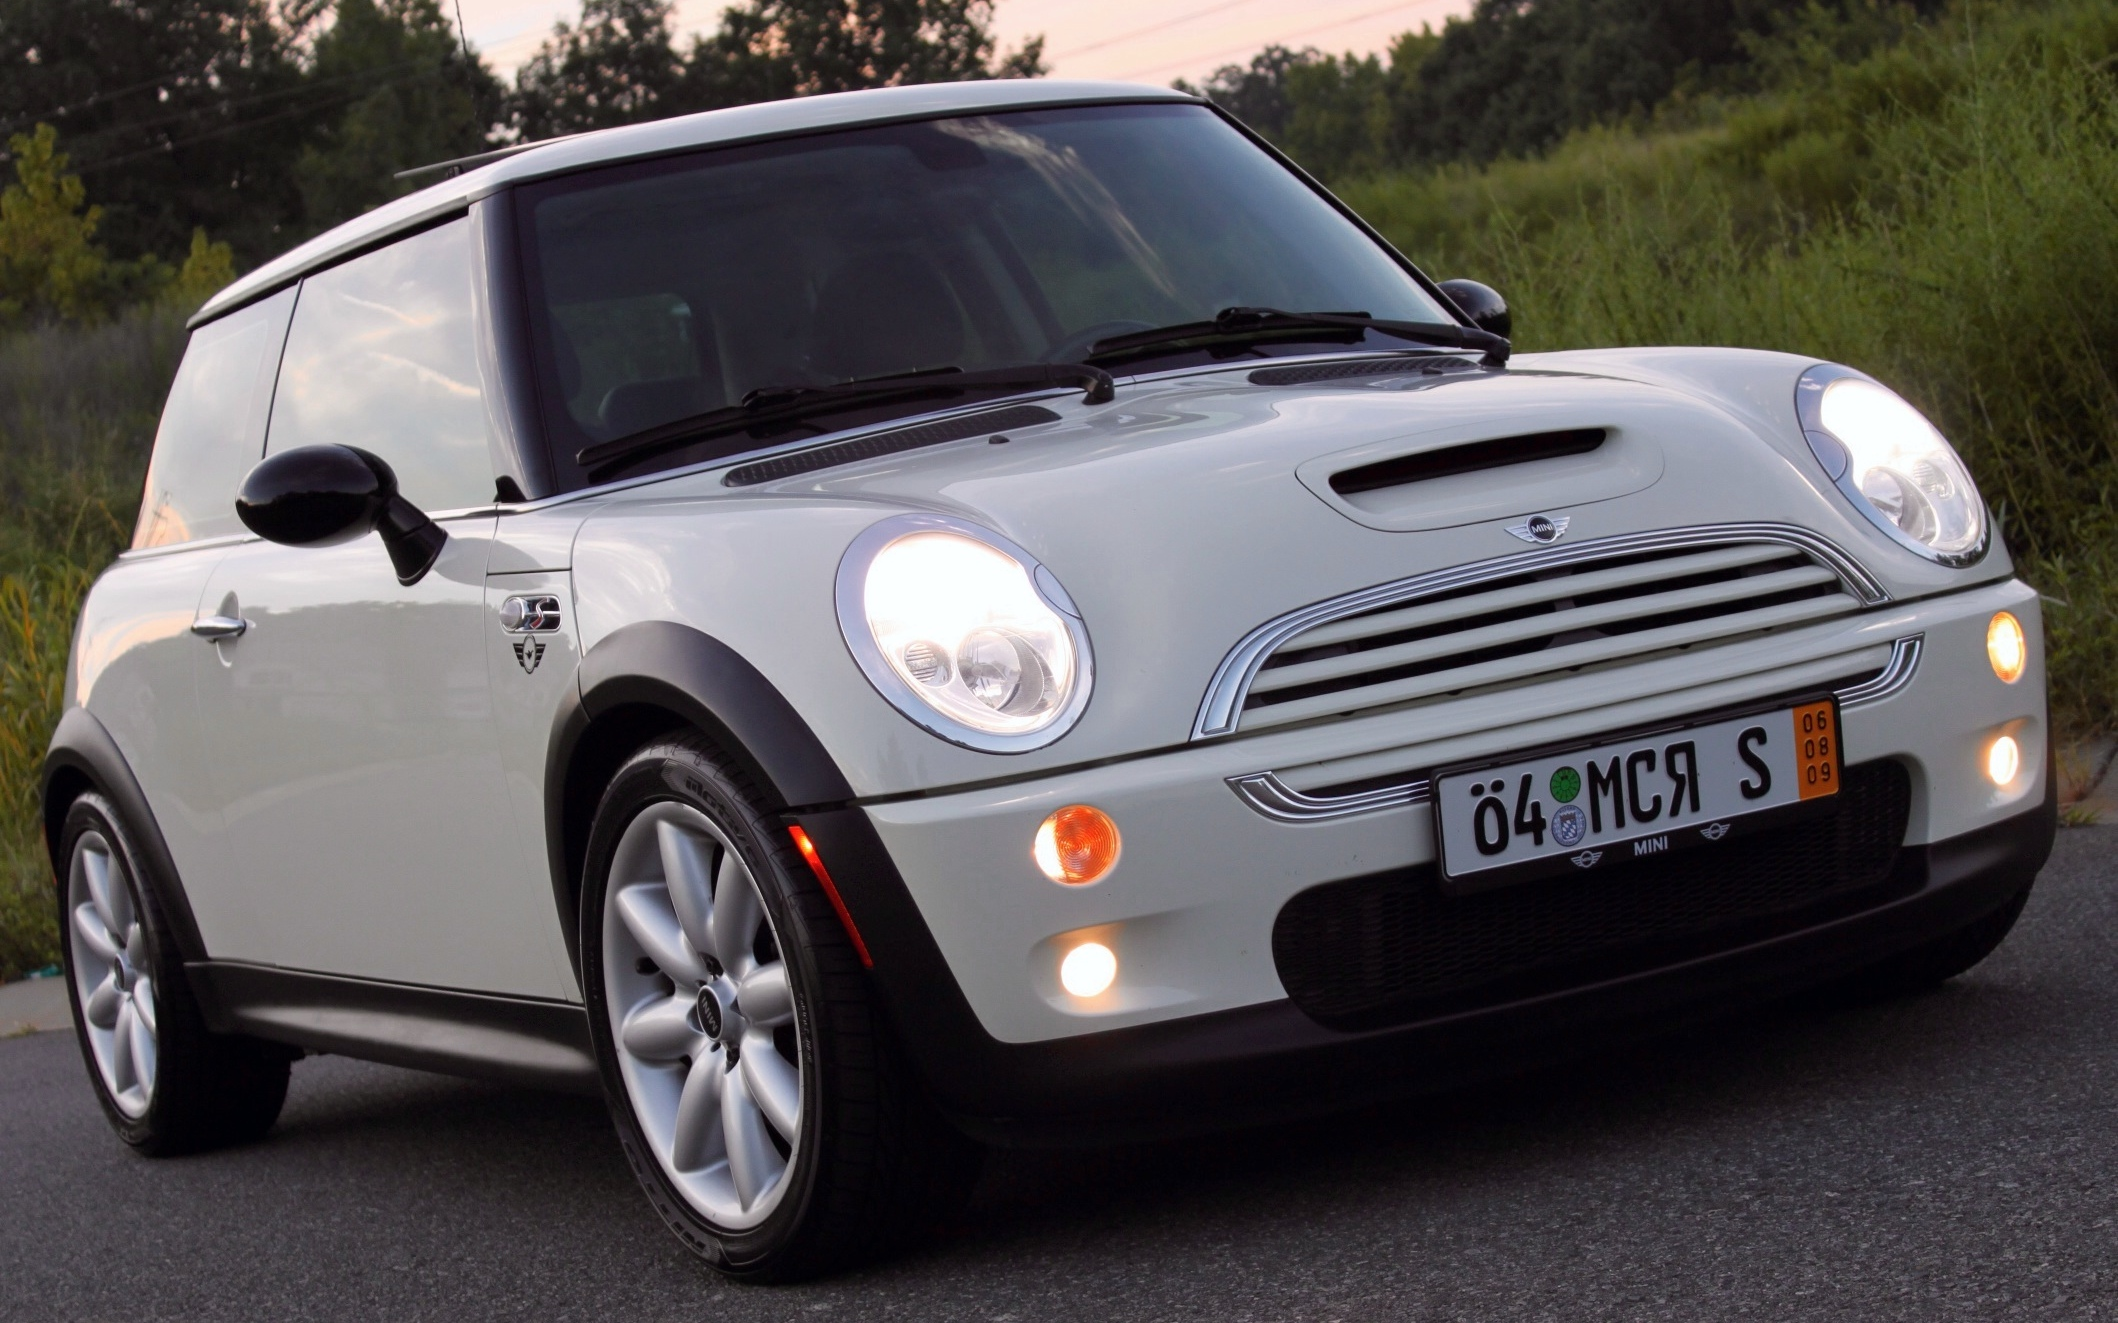 holymini 39 s 2004 mini cooper in tallahassee fl. Black Bedroom Furniture Sets. Home Design Ideas